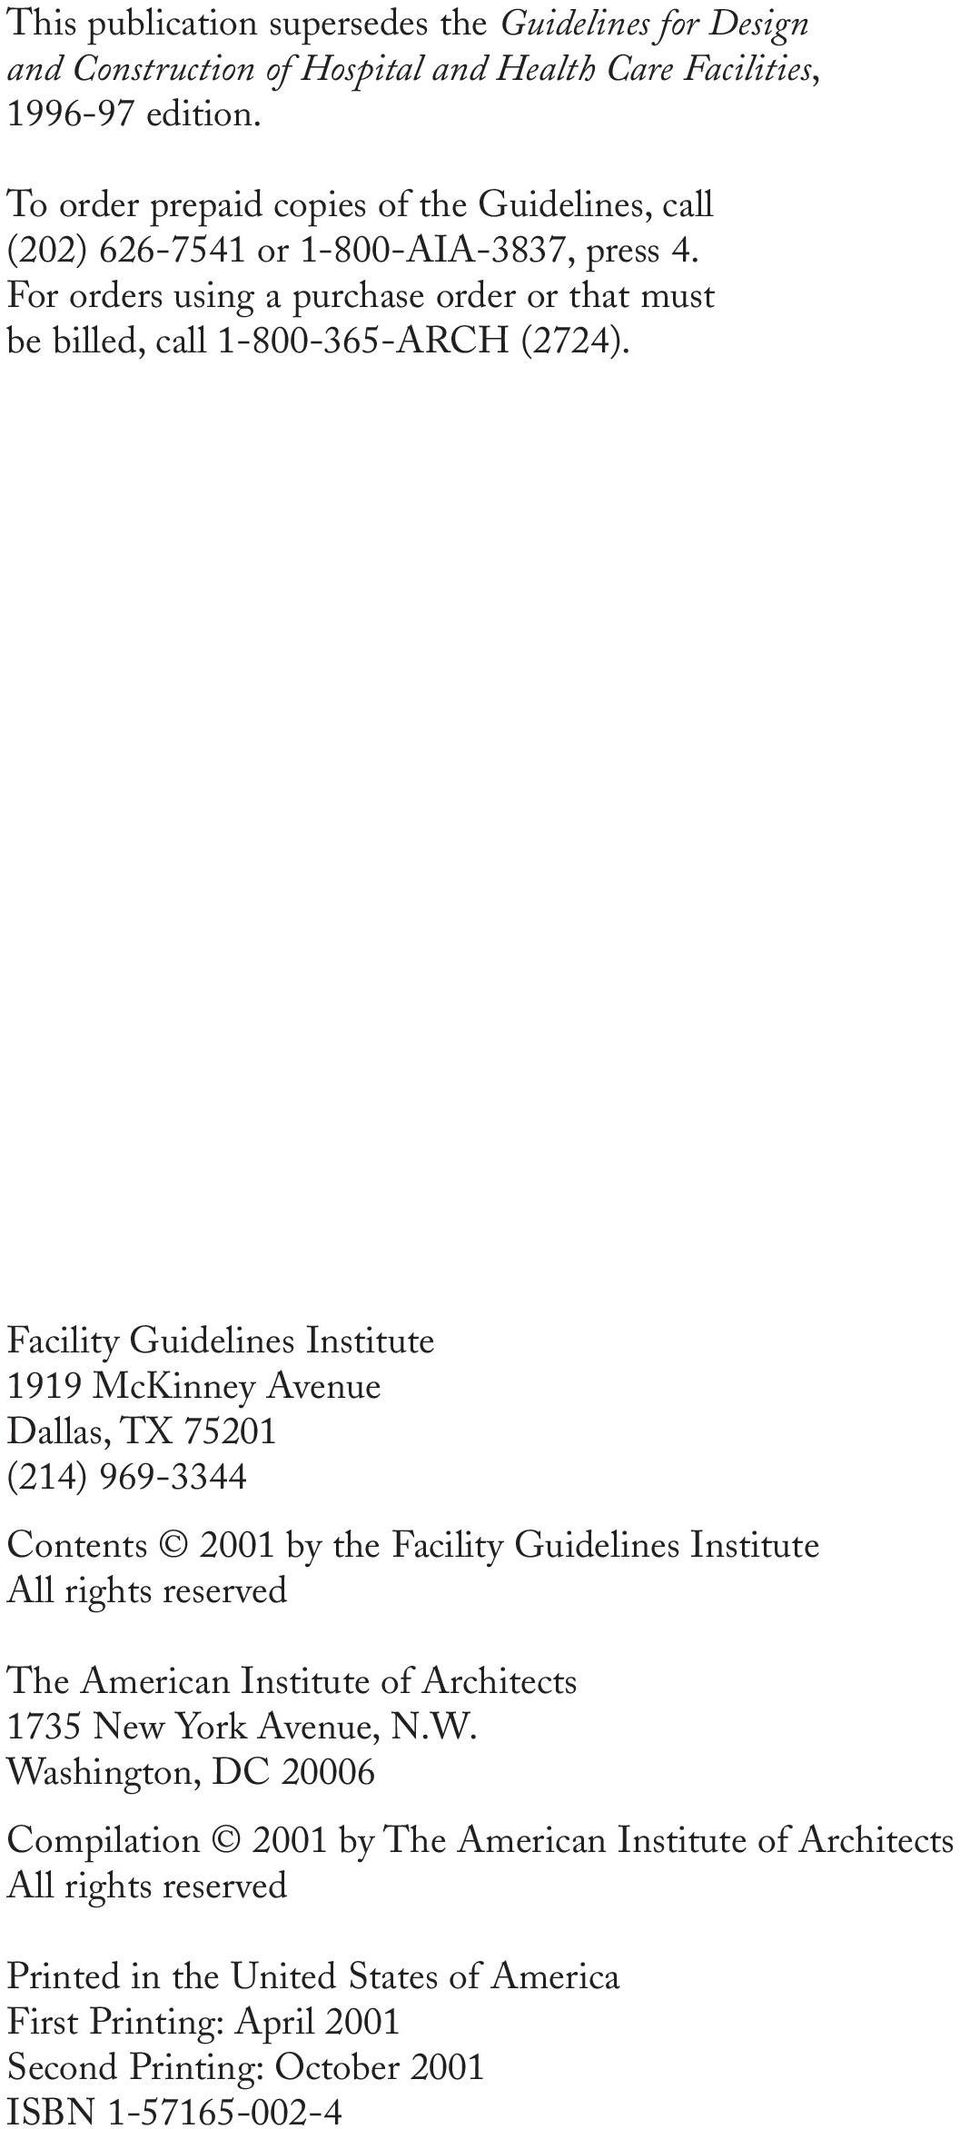 Facility Guidelines Institute 1919 McKinney Avenue Dallas, TX 75201 (214) 969-3344 Contents 2001 by the Facility Guidelines Institute All rights reserved The American Institute of